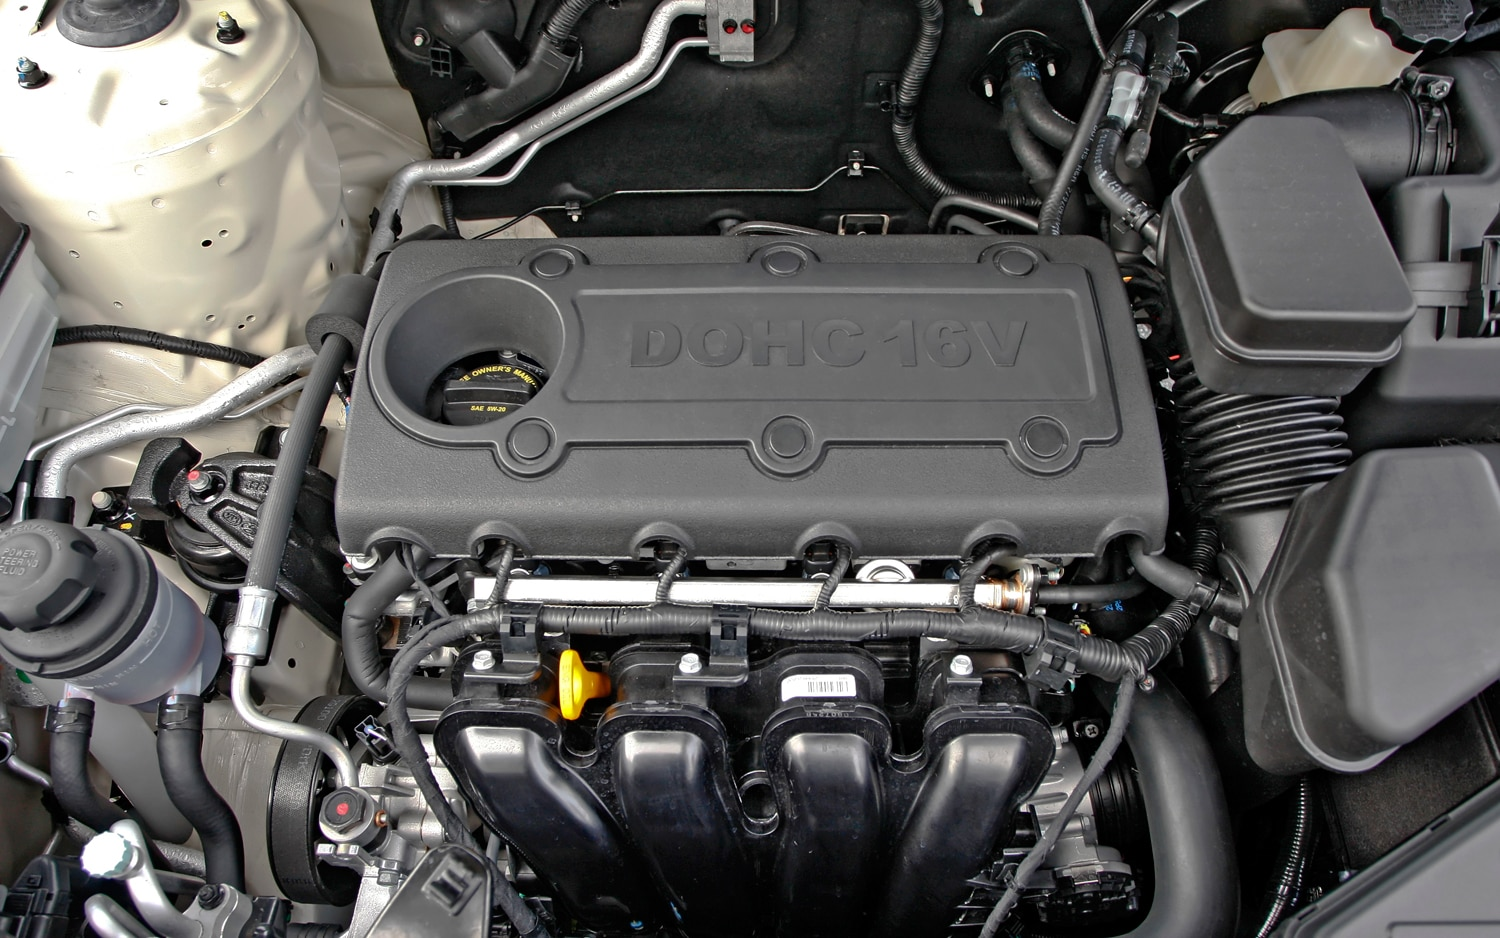 2012 Kia Sorento Engine